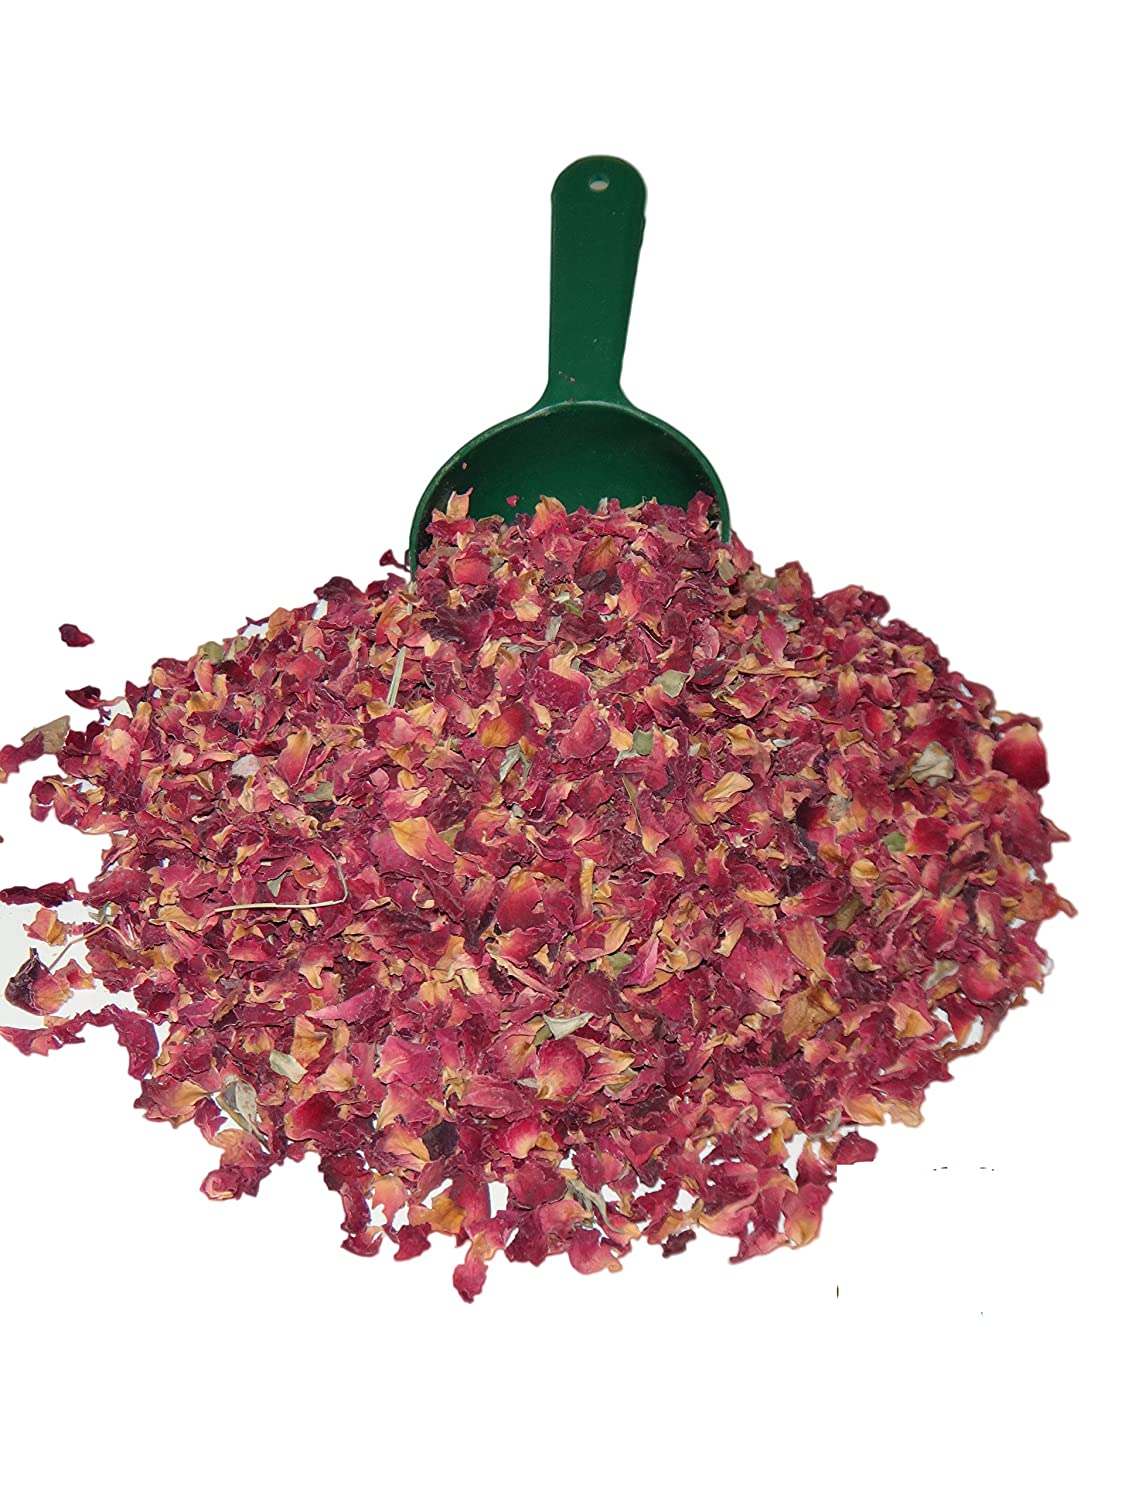 GodSpeed Premium Food/Culinary Grade A, Organic Dried Red Rose Buds And Petals 4 OZ. Bag